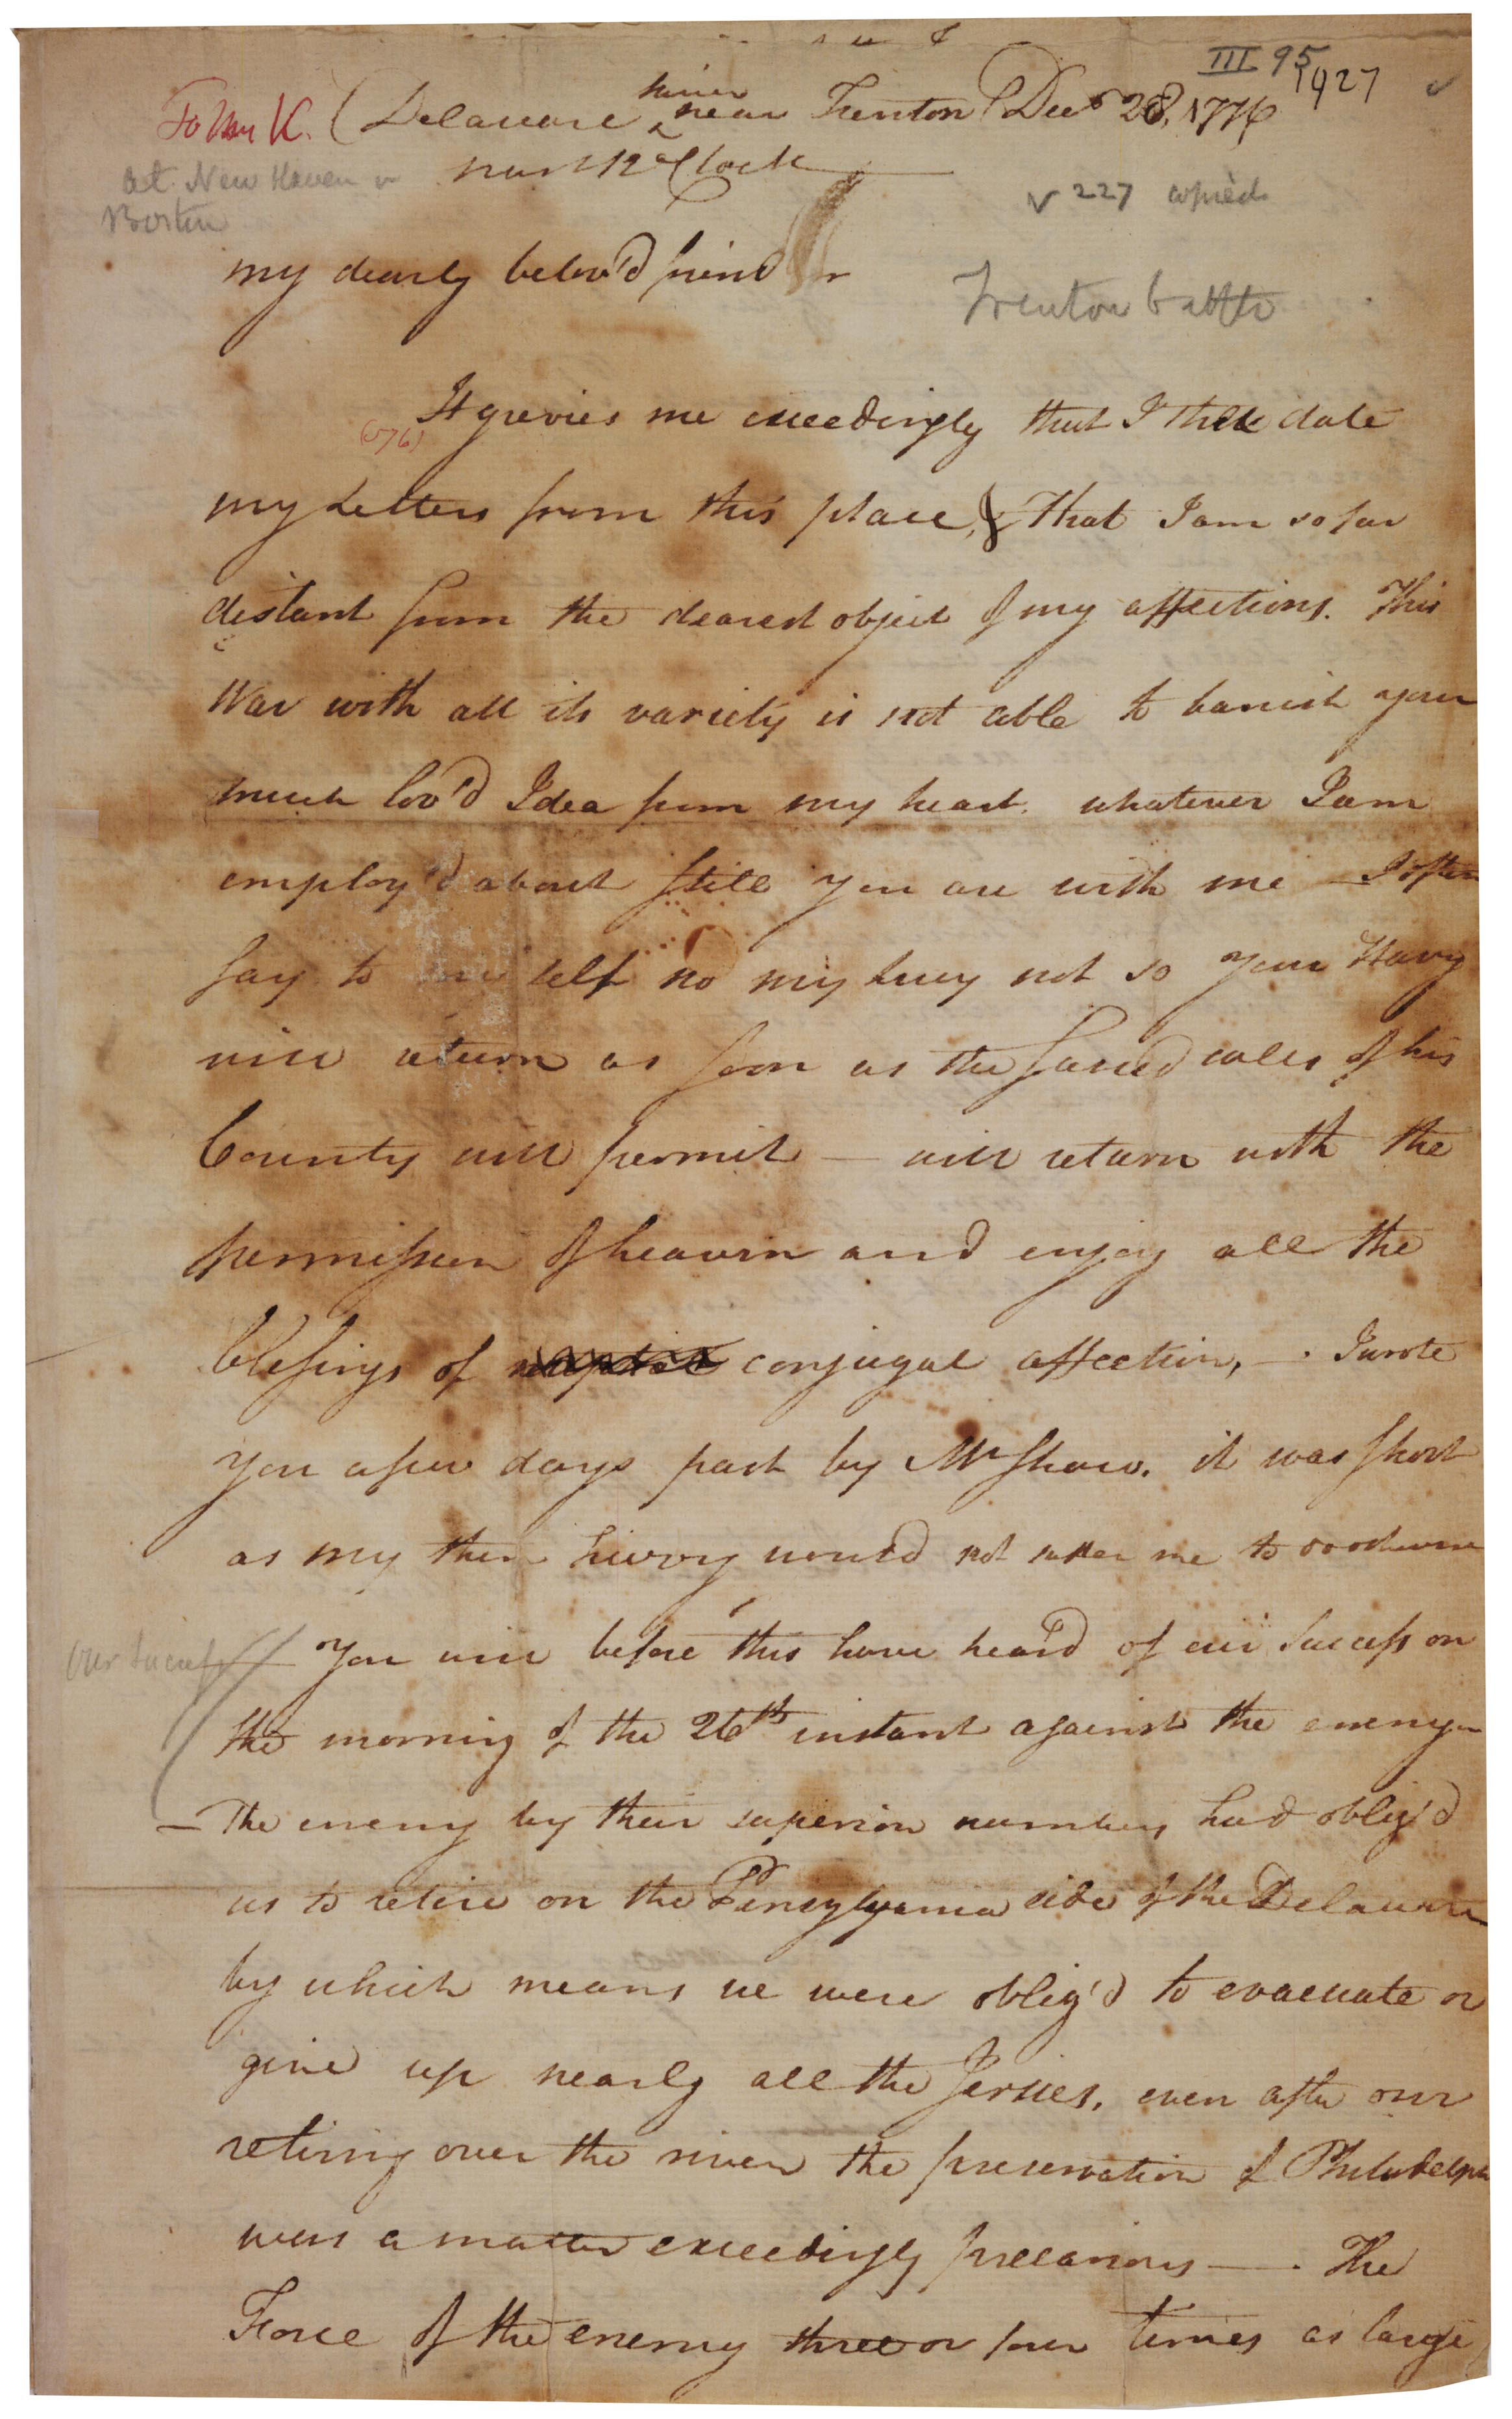 Henry Knox to Lucy Knox, December 28, 1776 (Gilder Lehrman Collection)